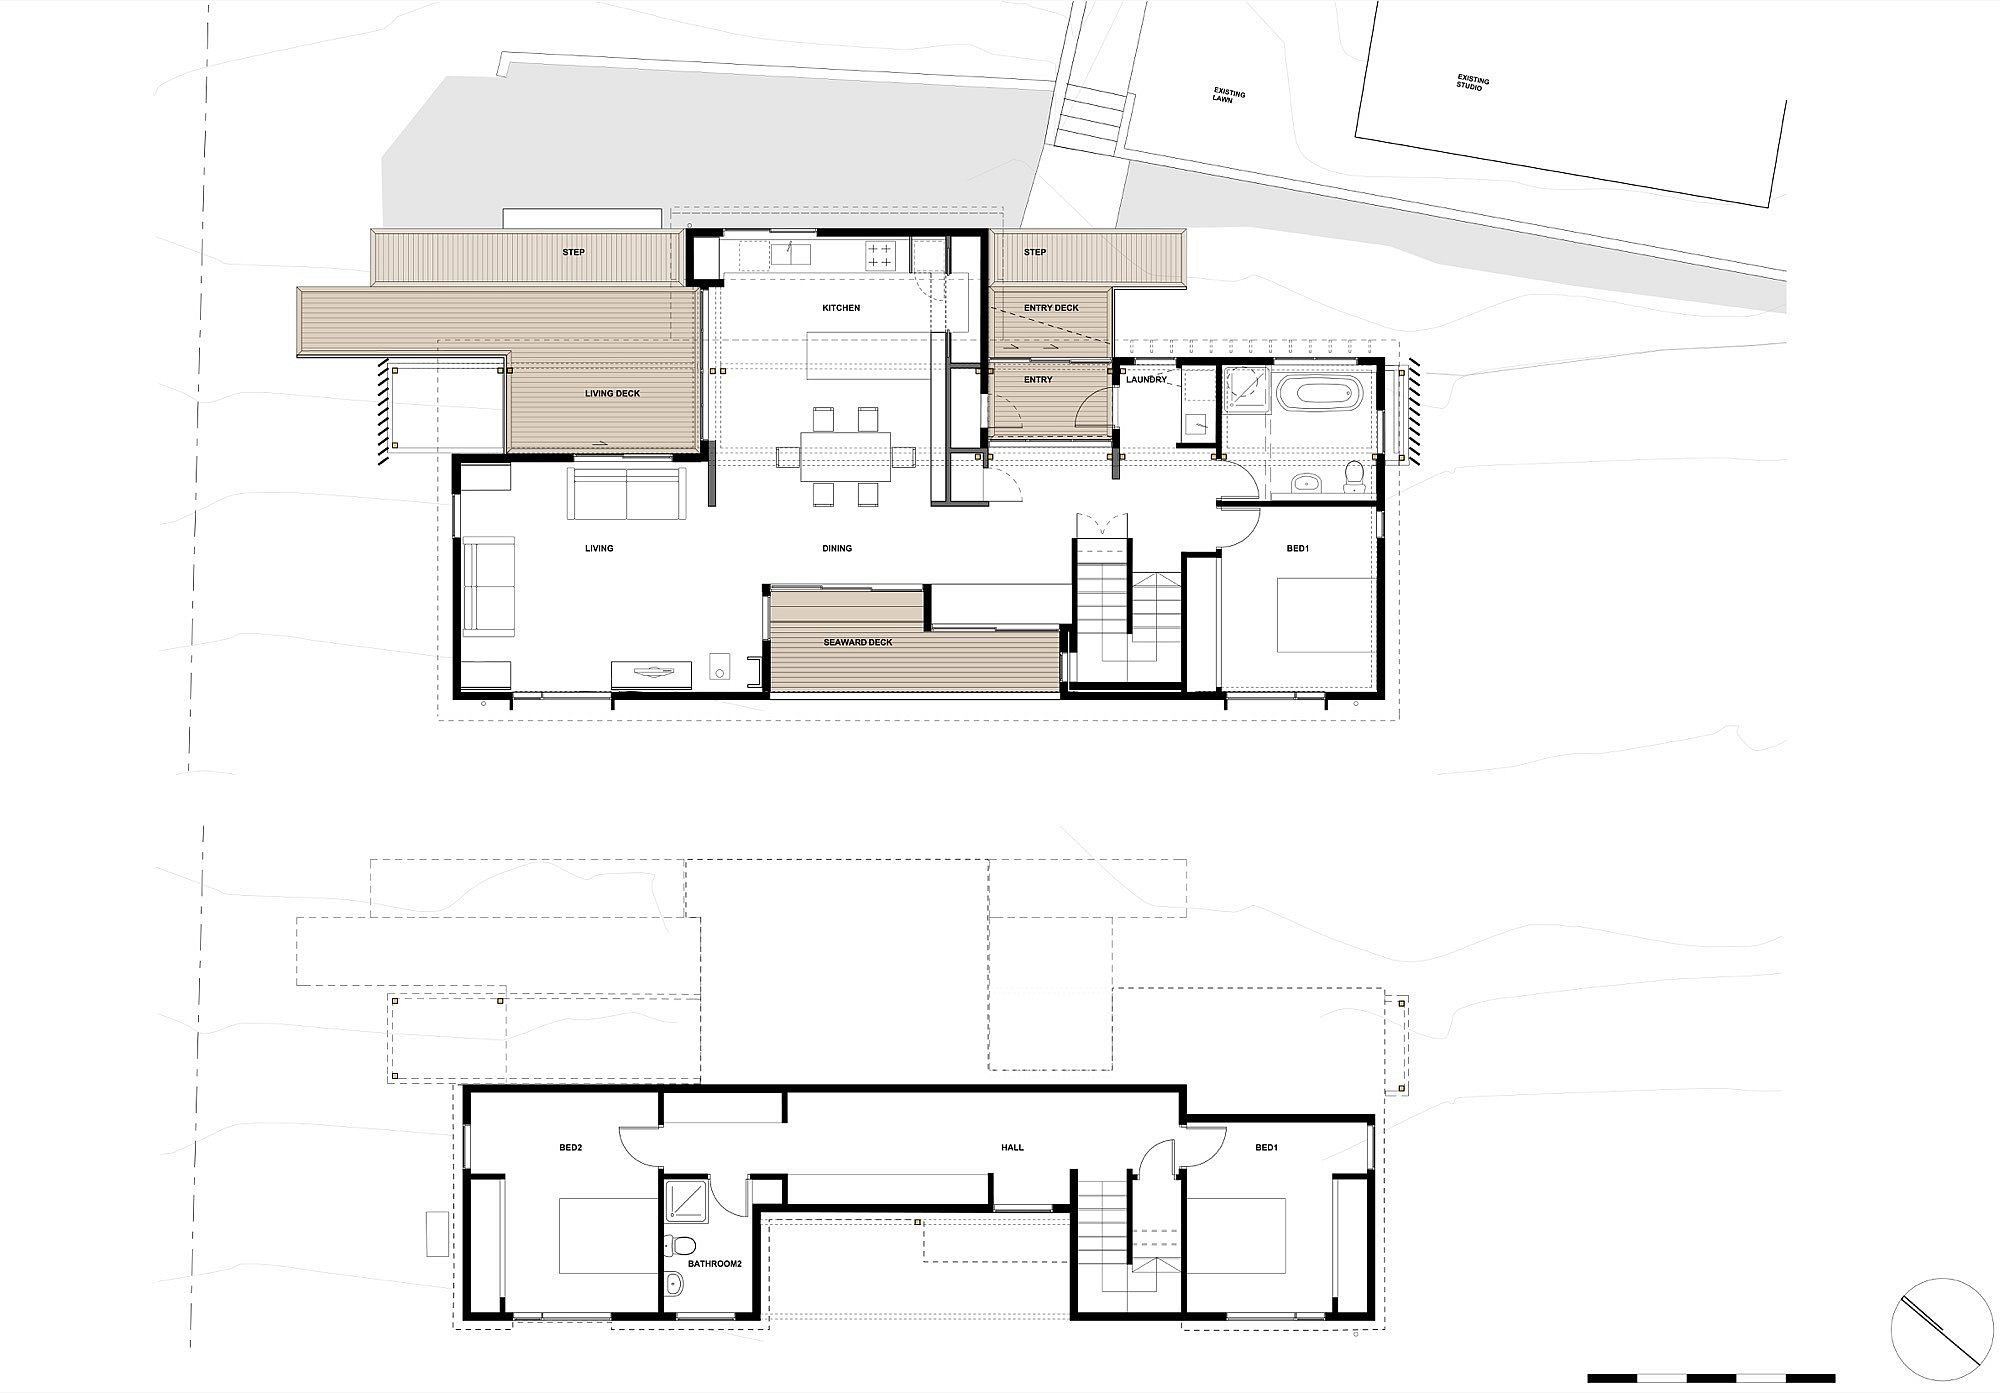 Floor plan of the House with Villa Silhouette